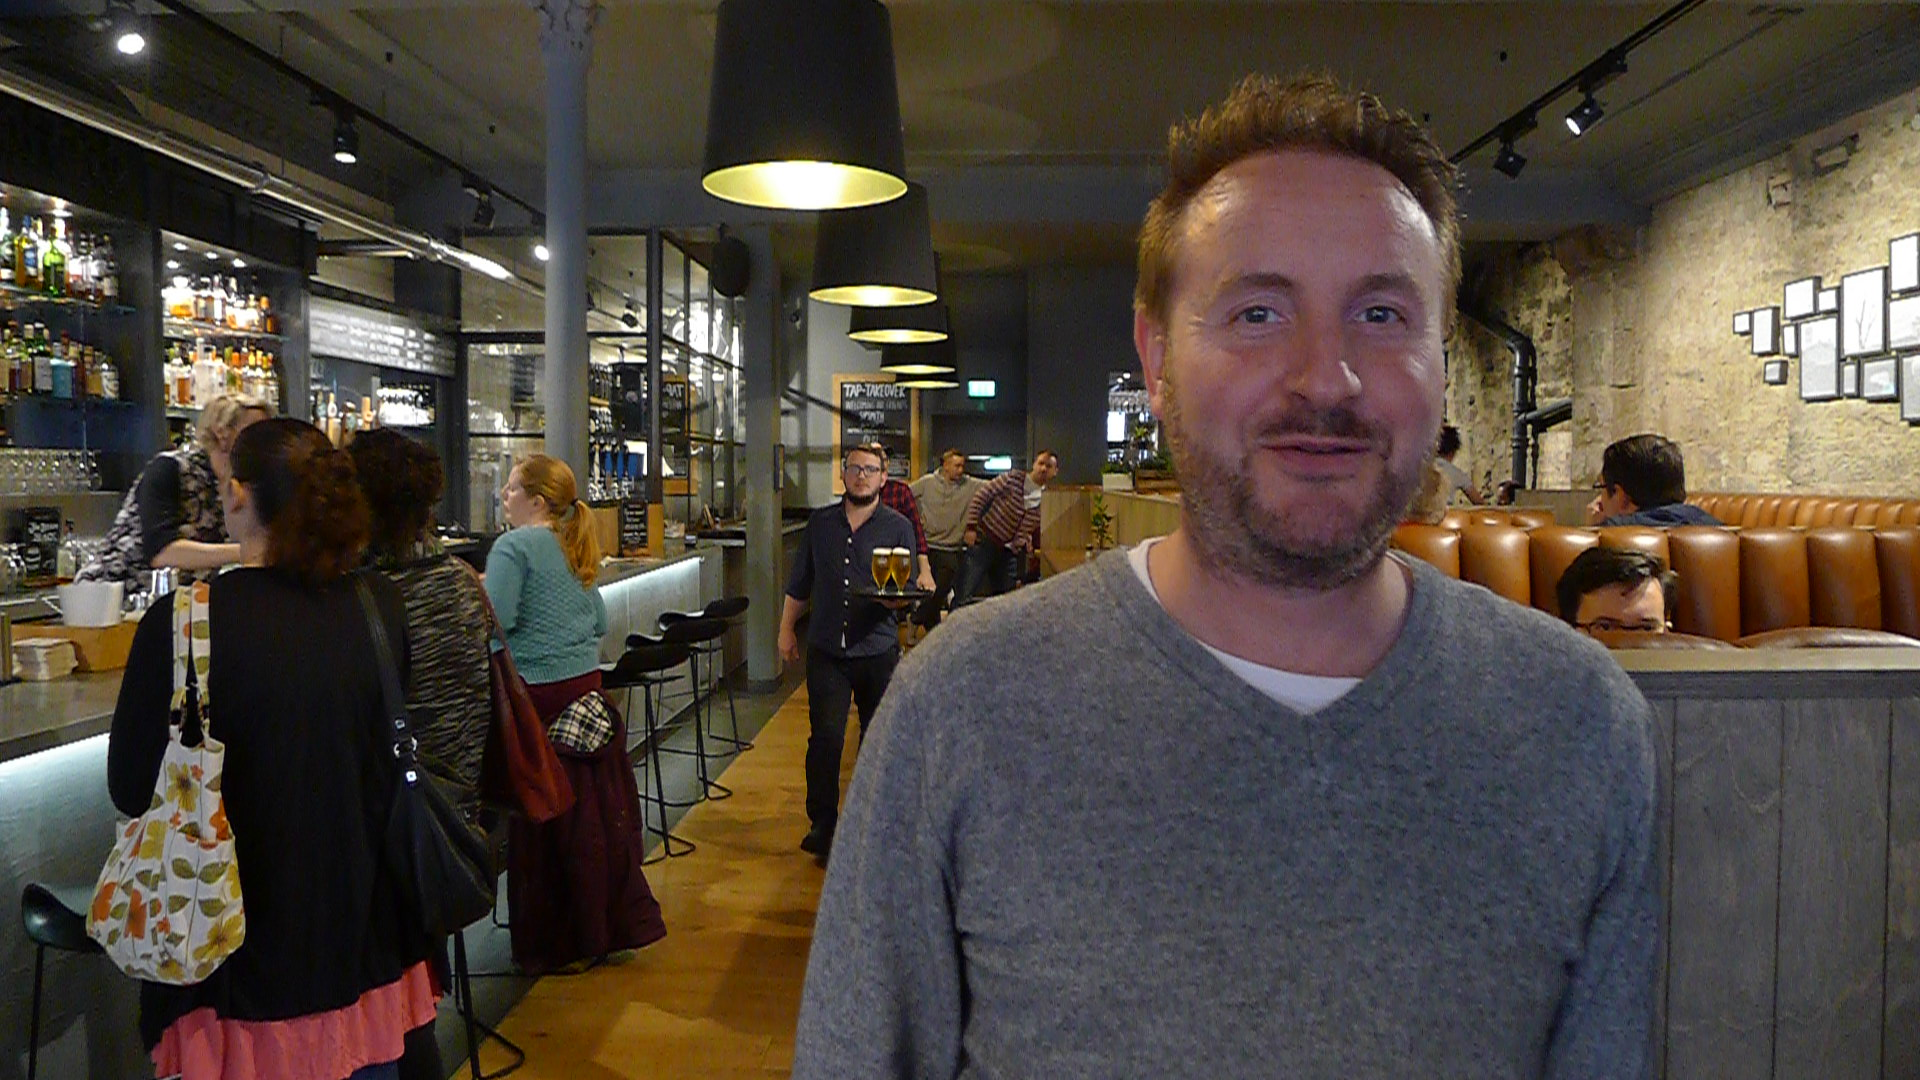 Innis and Gunn's Founder and Master Brewer. Mr. Dougal Sharp at Edinburgh's Beer Kitchen.